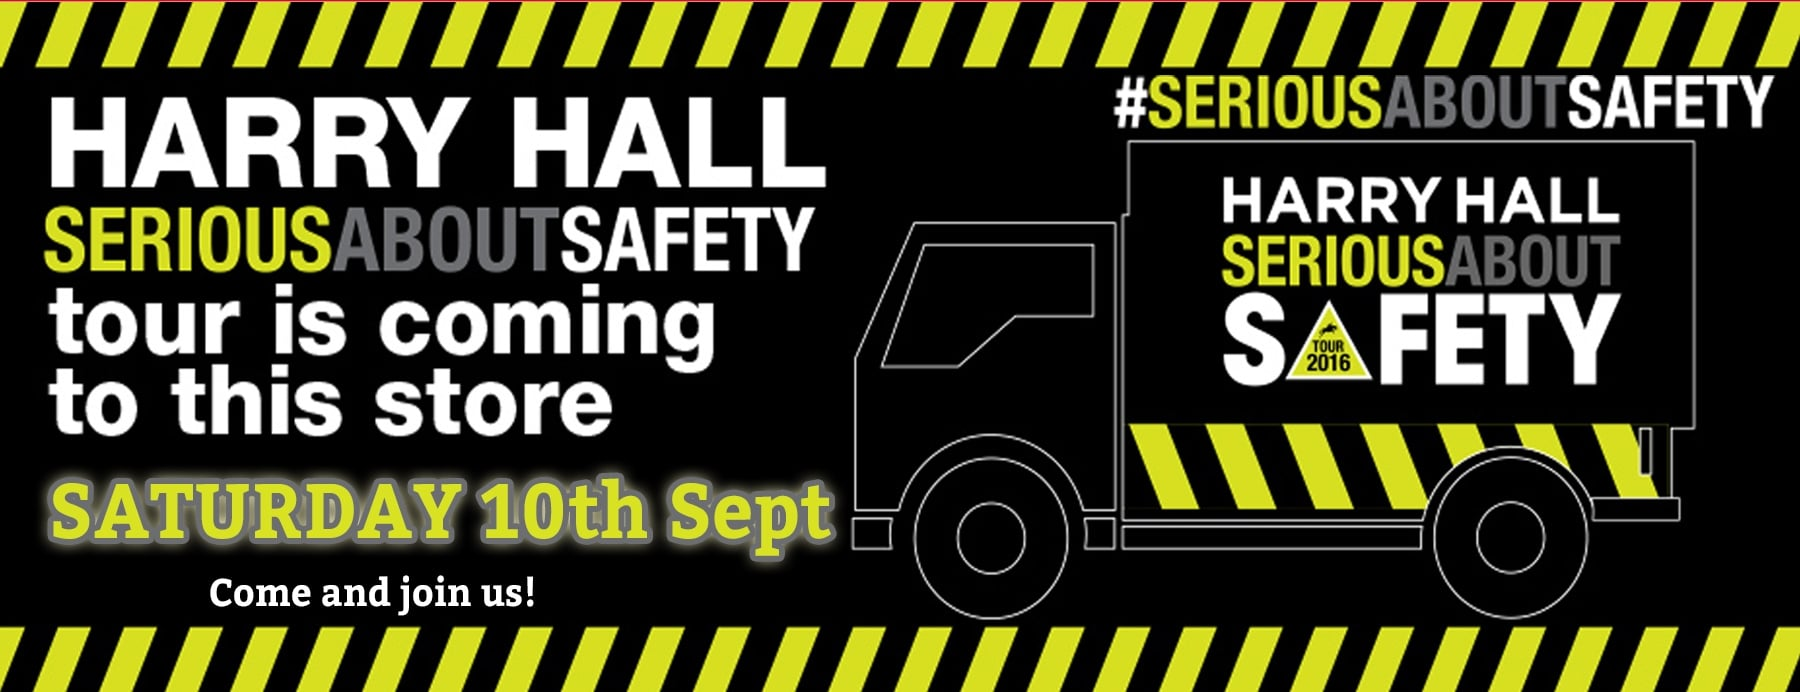 Serious About Safety Tour 2016